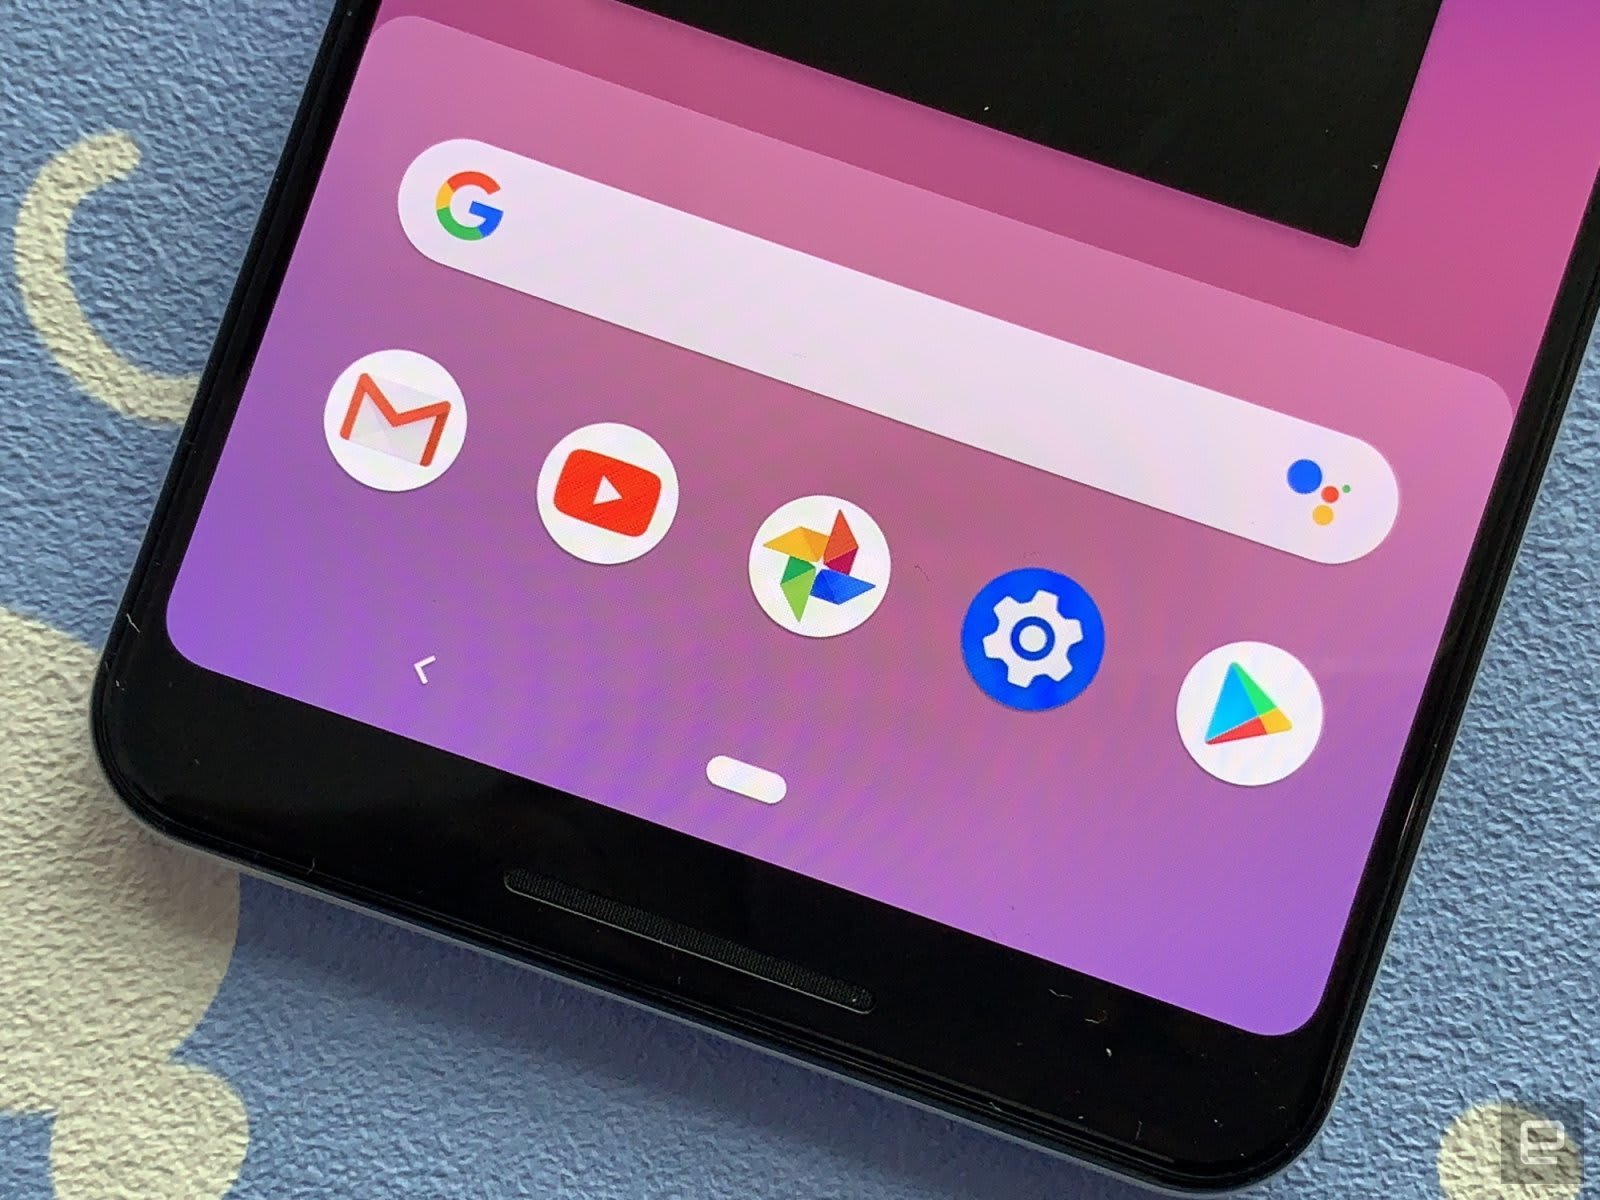 Android Q navigation